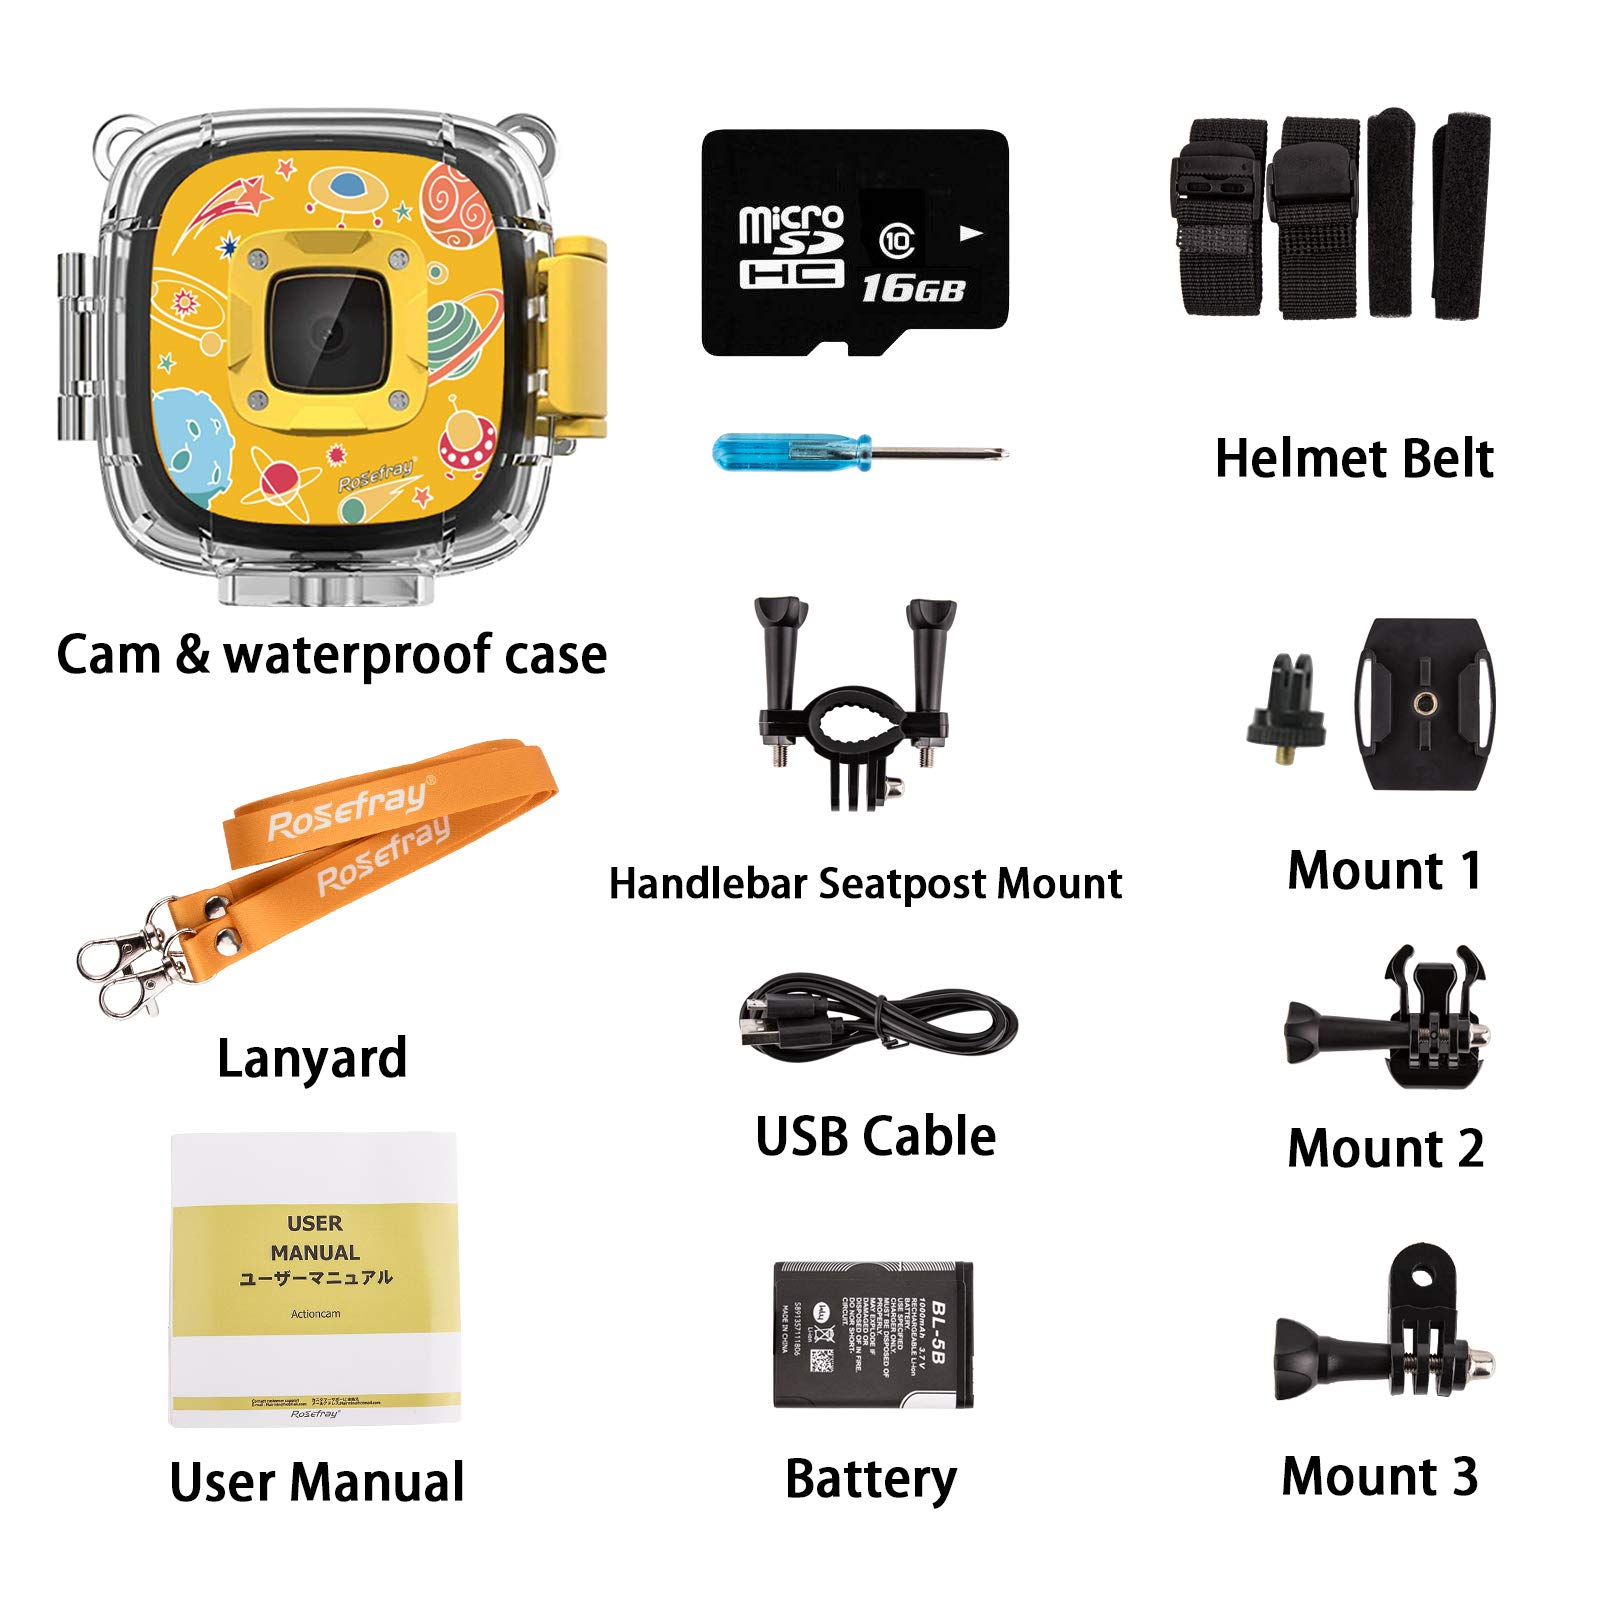 Rosefray Kids Camera,1080P HD Kids Action Camera, Sports Kids Digital Cameras for Boys and Girls, 16GB SD Card, Yellow by Rosefray (Image #7)